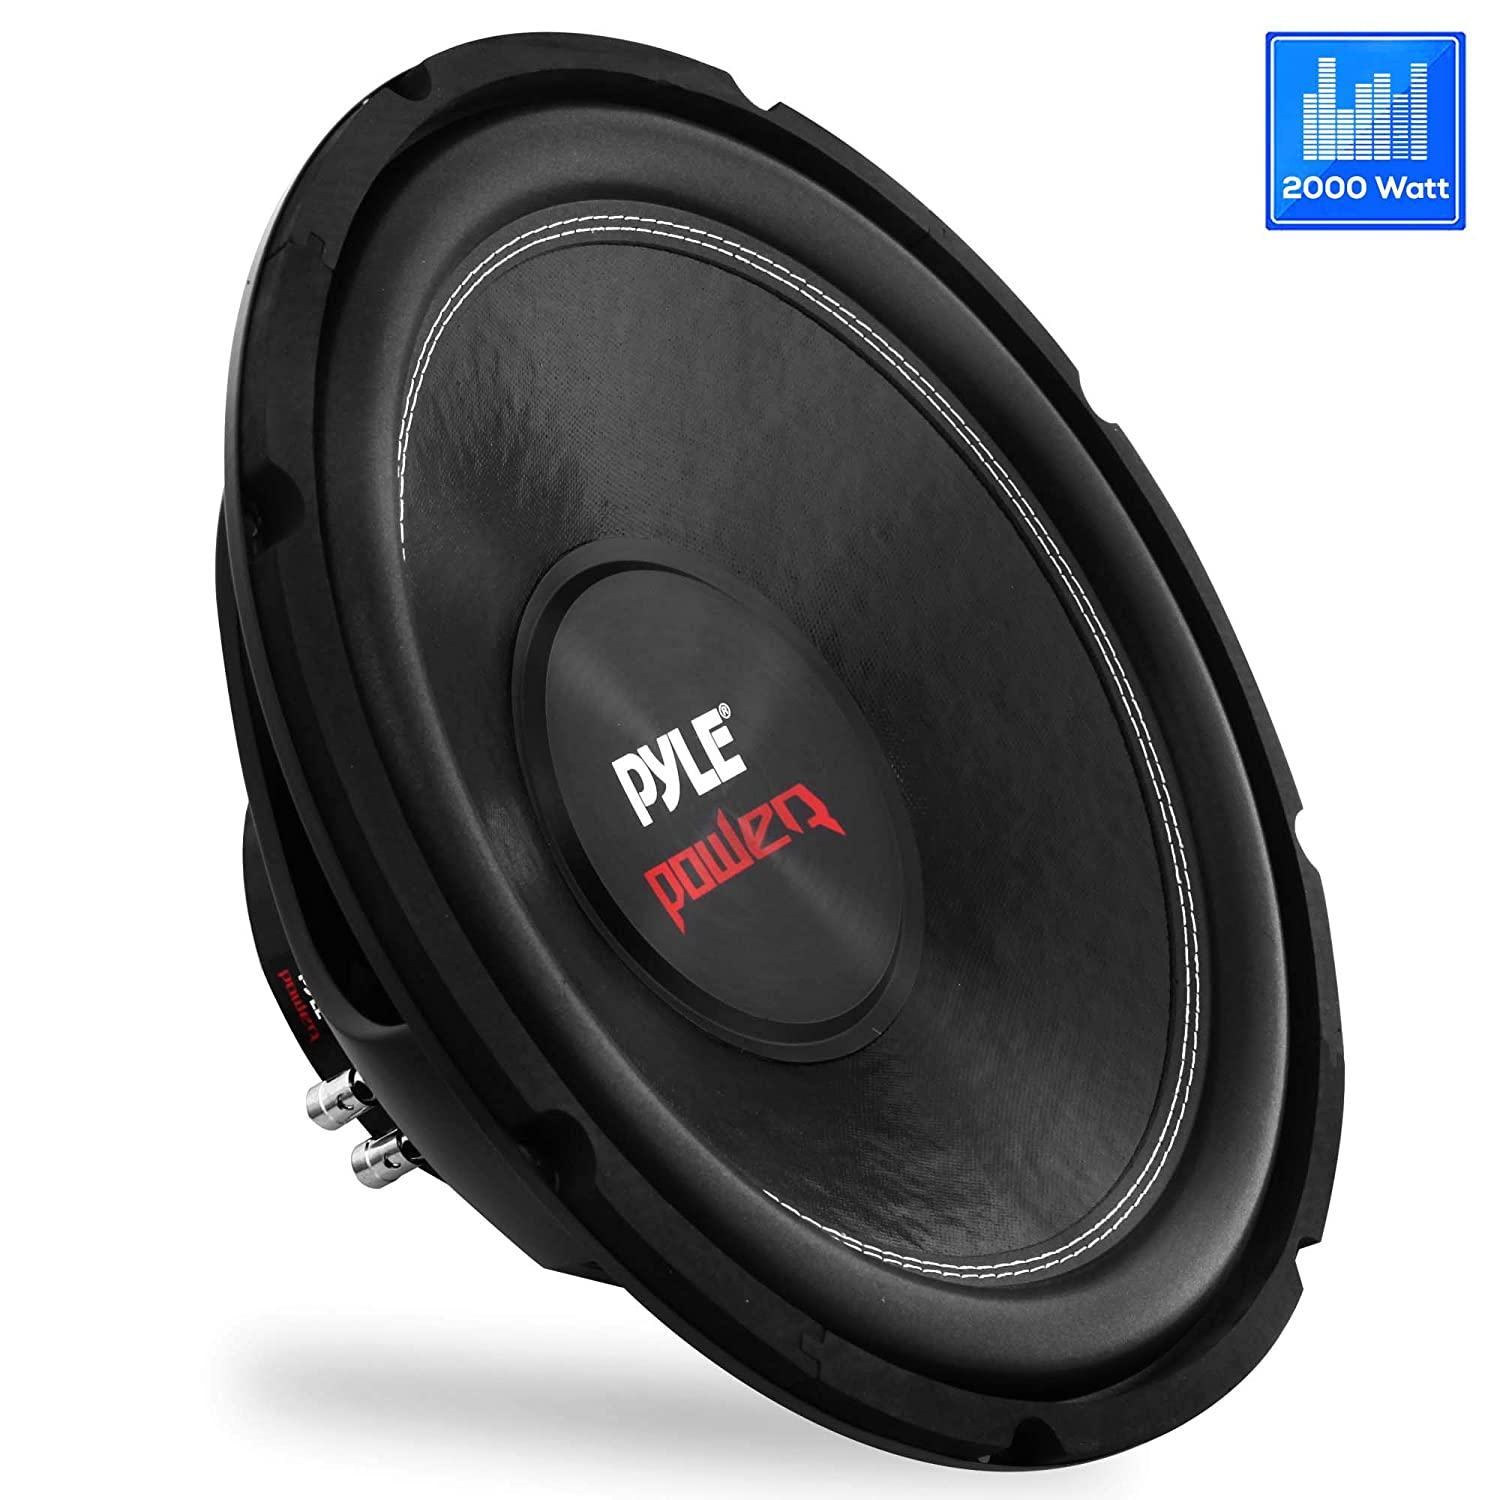 Car Vehicle Subwoofer Audio Speaker - 15inch Non-Pressed Paper Cone, on